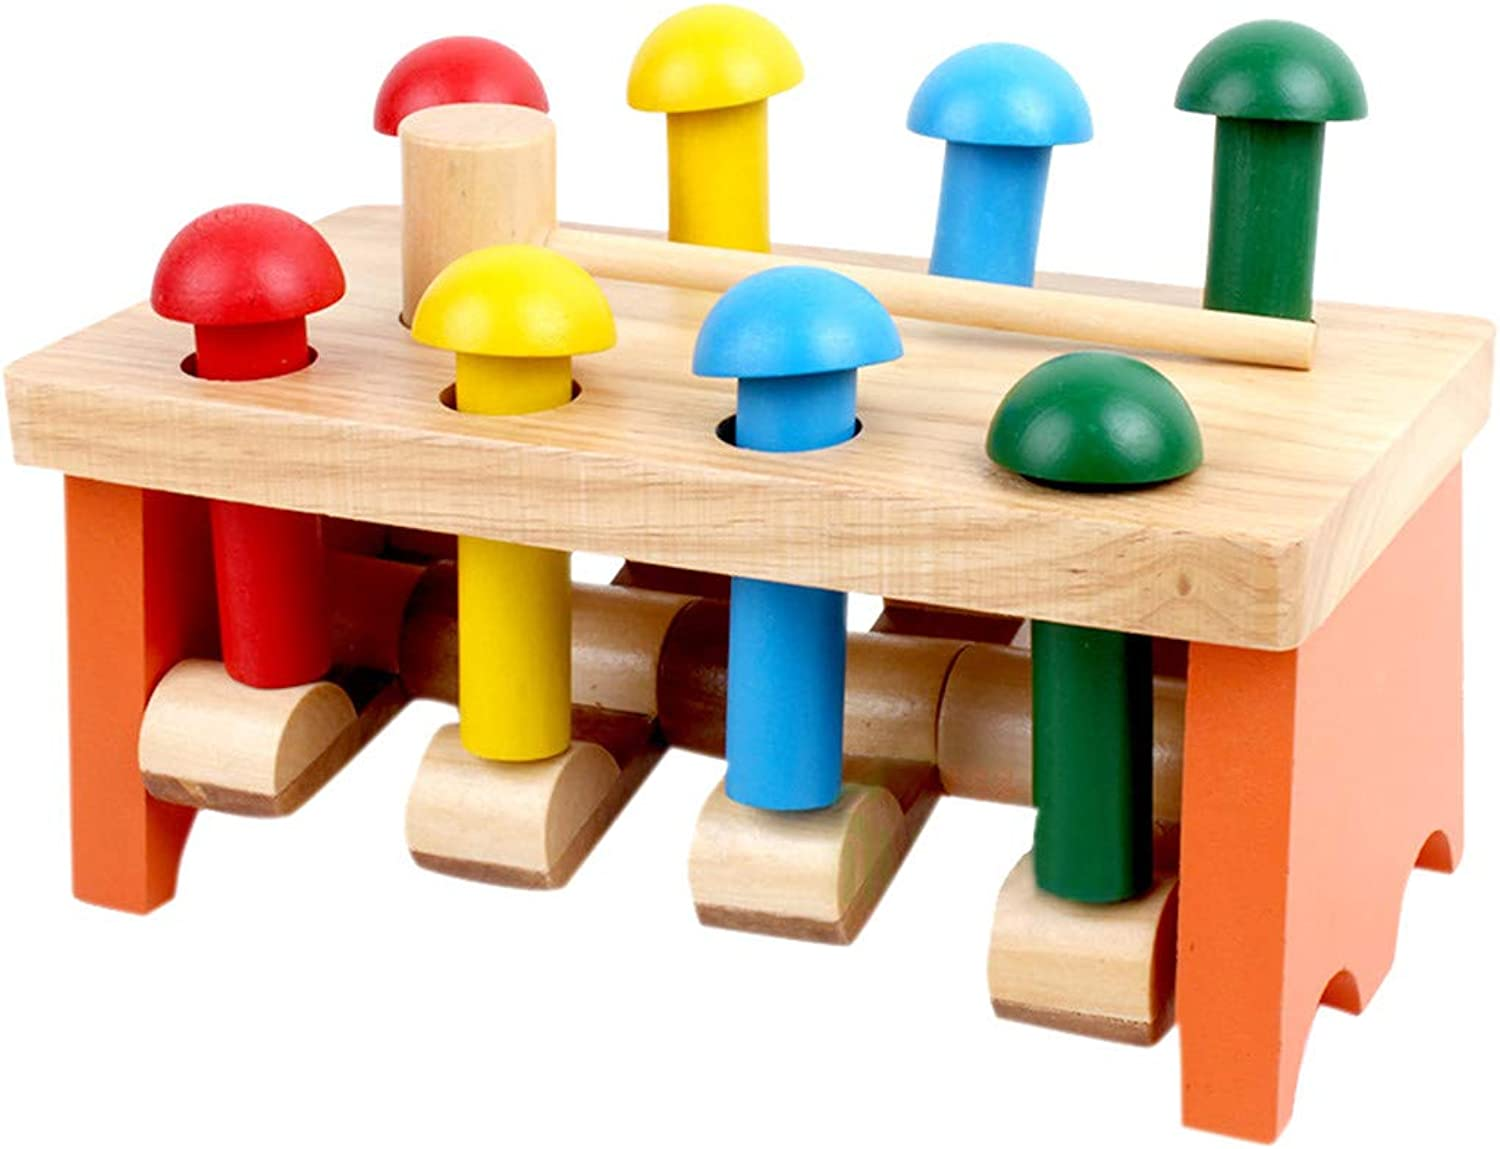 Pounding Bench Toys, Sacow Multicolor Wooden Hammering Game with Hammer Kids Baby Educational Toys (C)